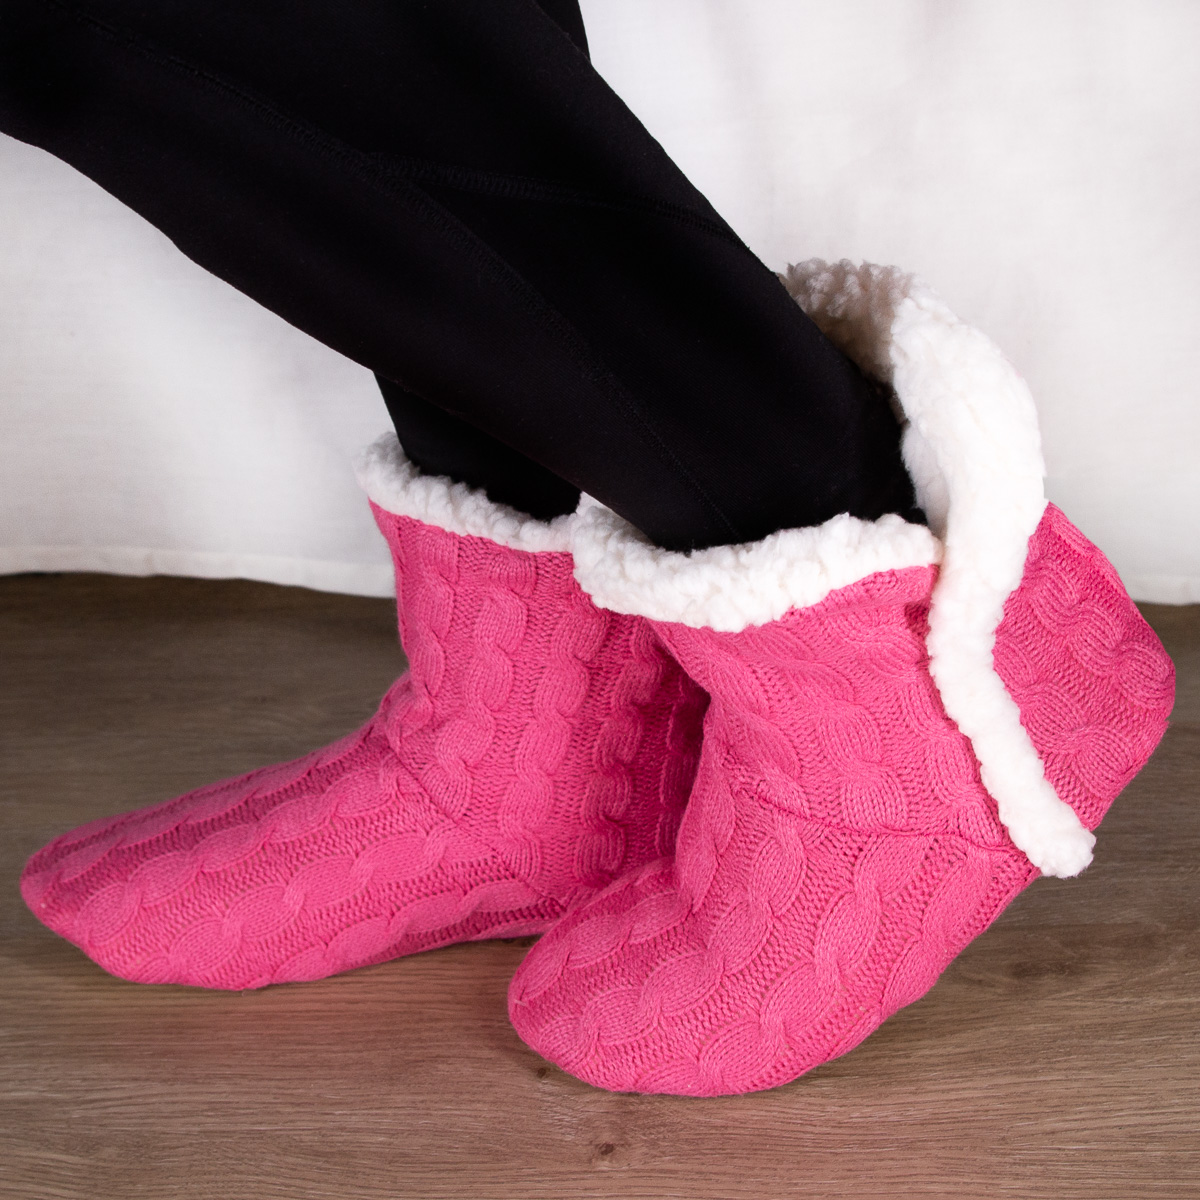 thumbnail 22 - Yelete Women's Cable Knit Slippers House Booties Soft Sherpa Lining Rubber Soles